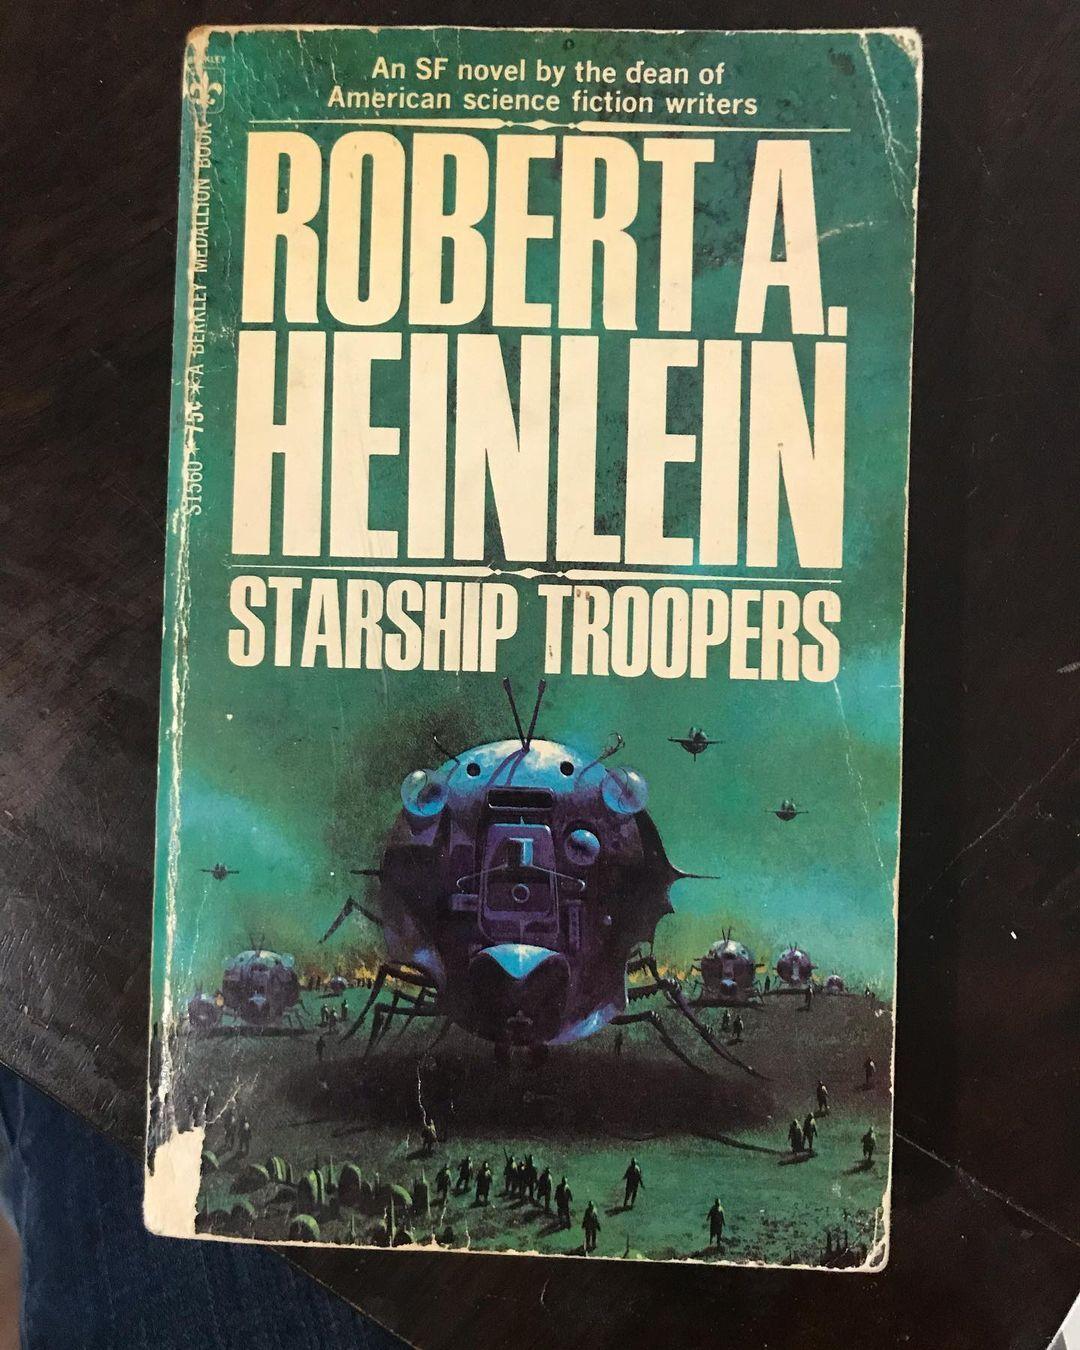 Book cover of 'Starship Troopers'